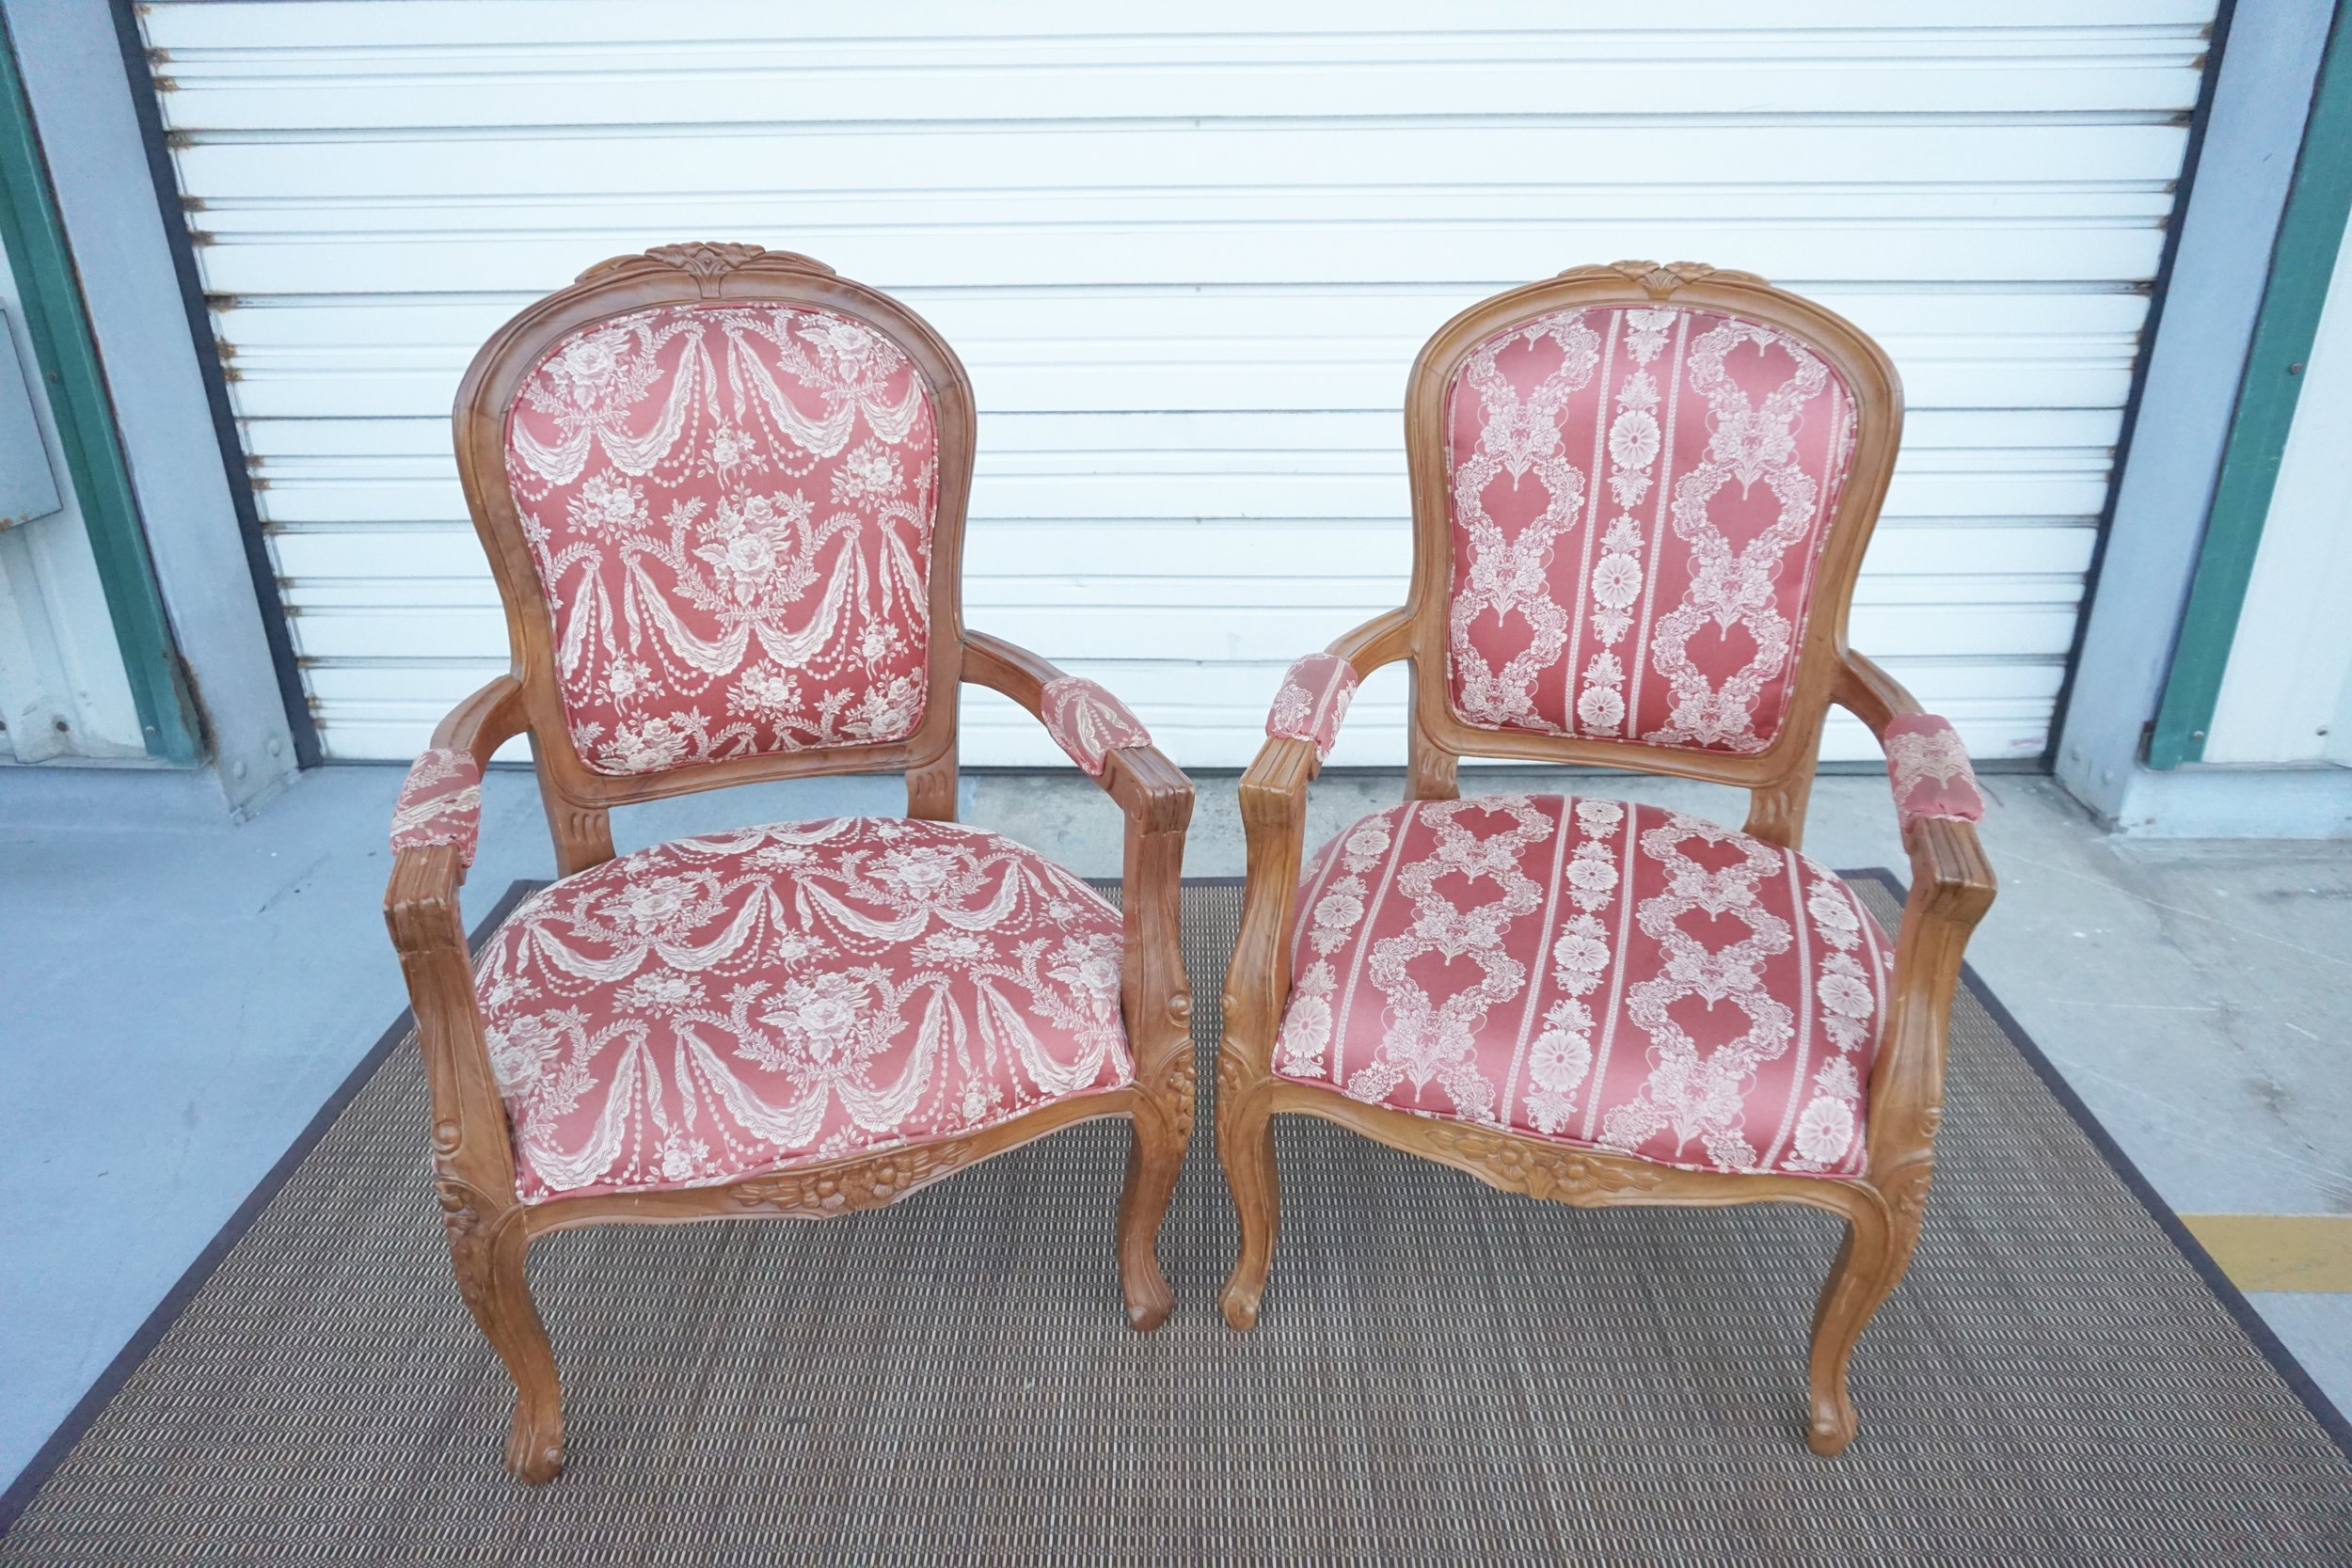 Antique Red Chairs